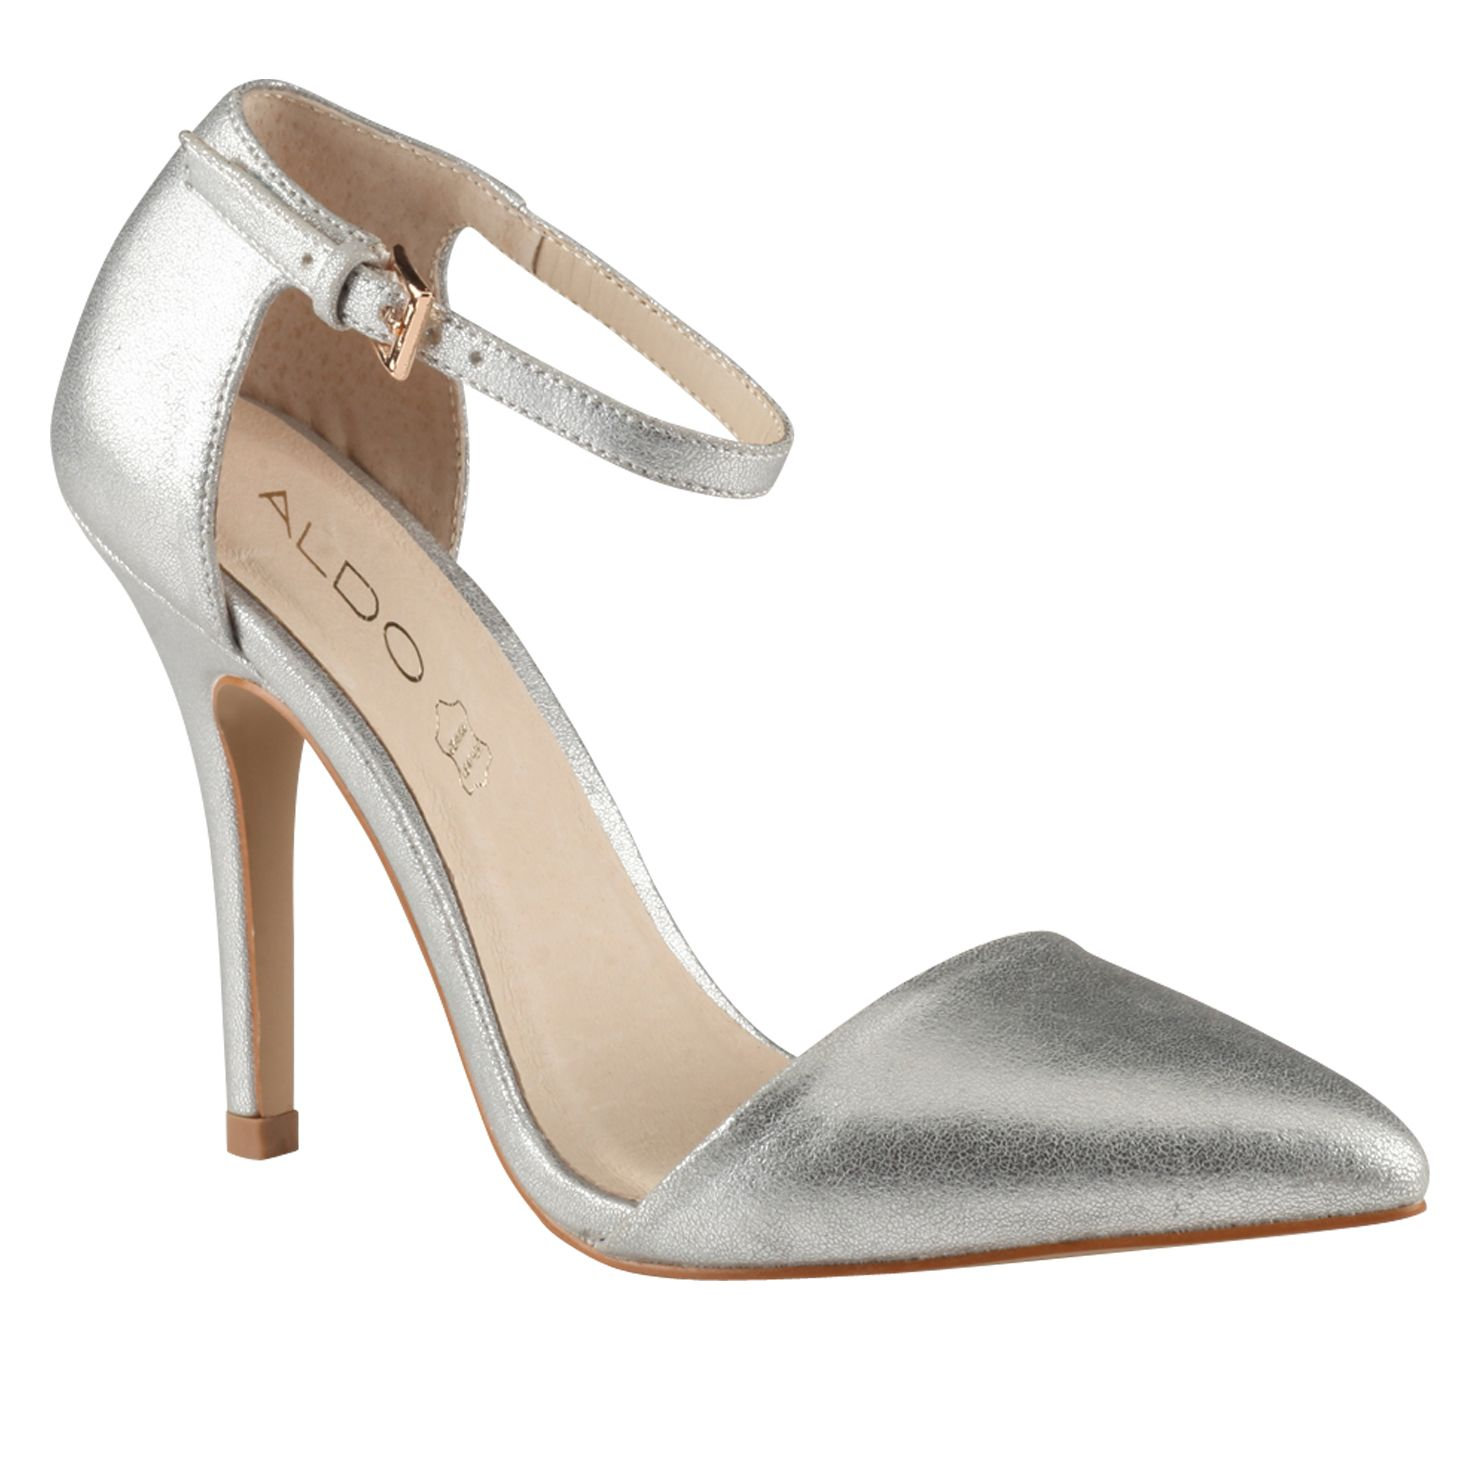 Galelawen pointed toe stilleto court shoes